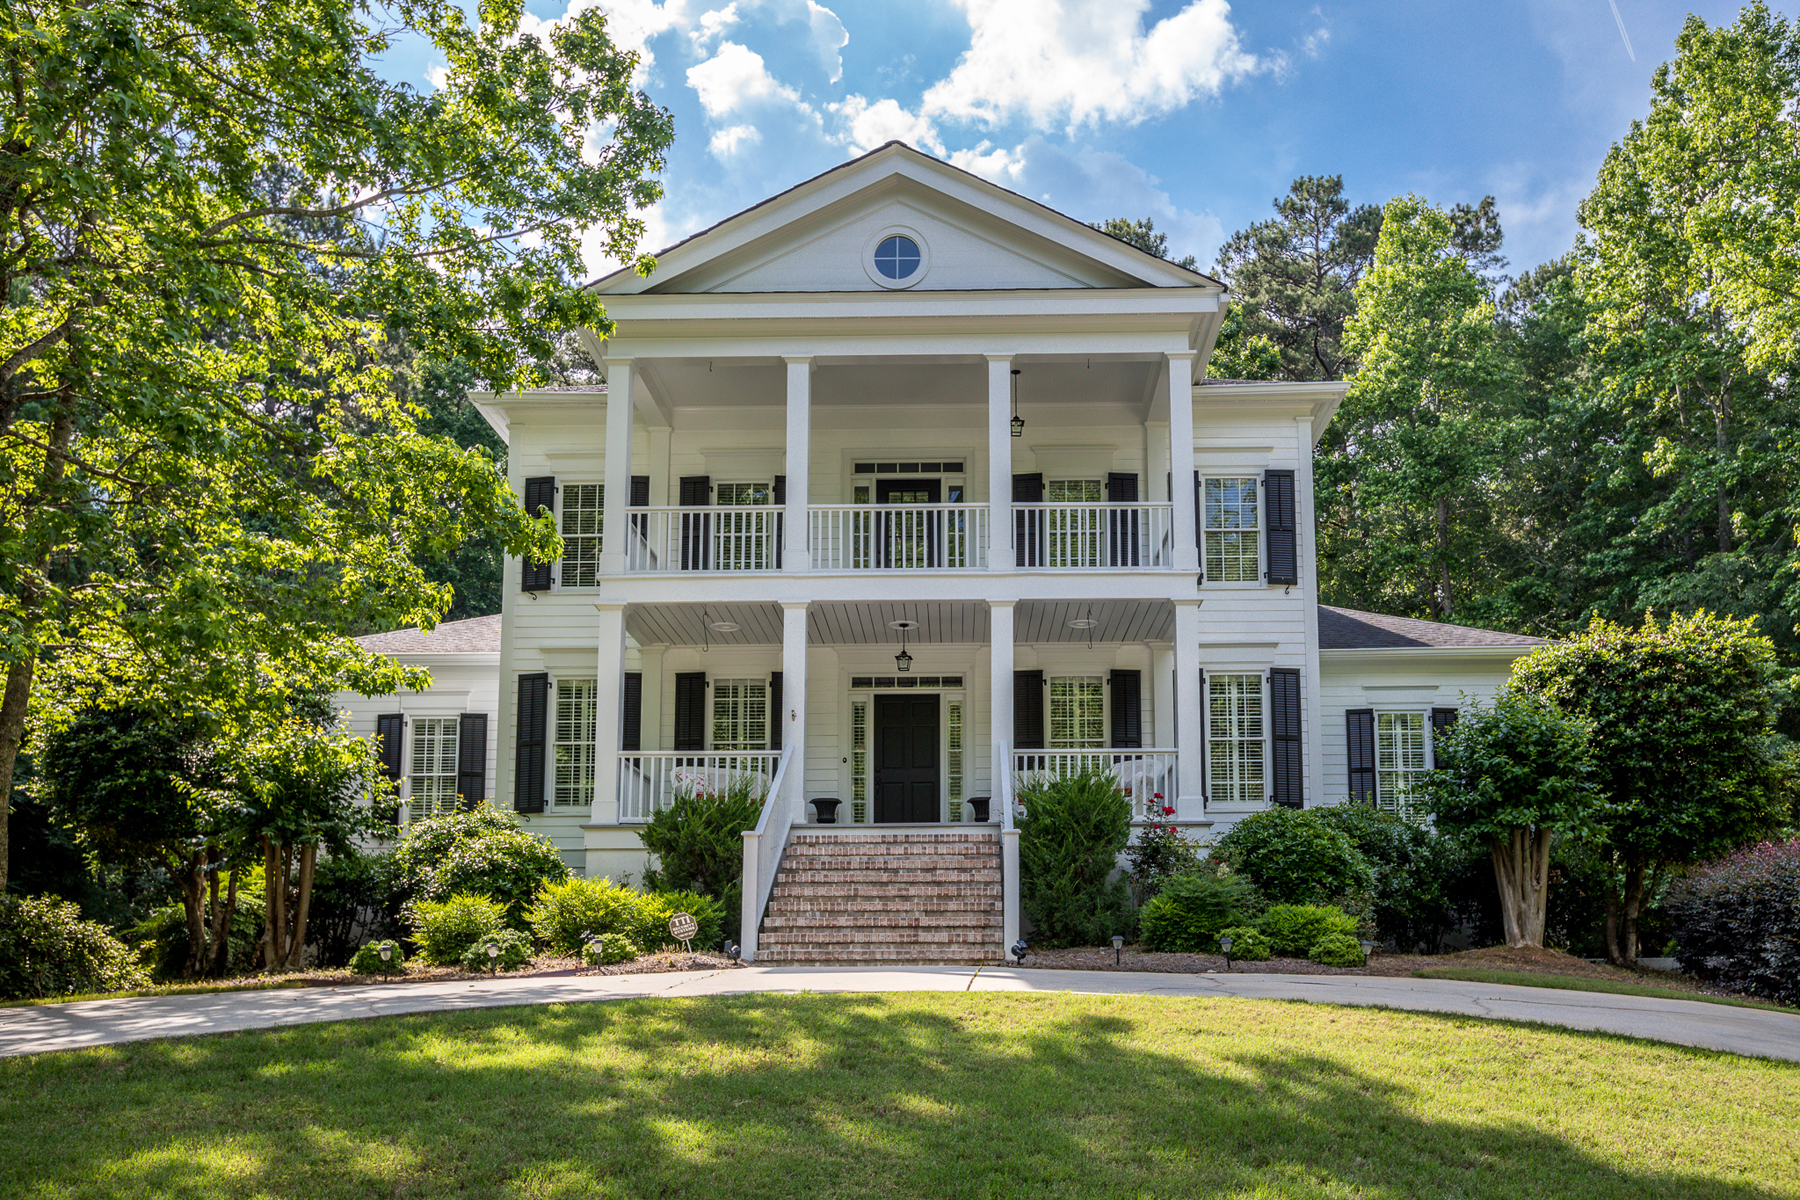 Single Family Homes for Sale at Classic Highgrove Home 220 Old Ivy, Fayetteville, Georgia 30215 United States